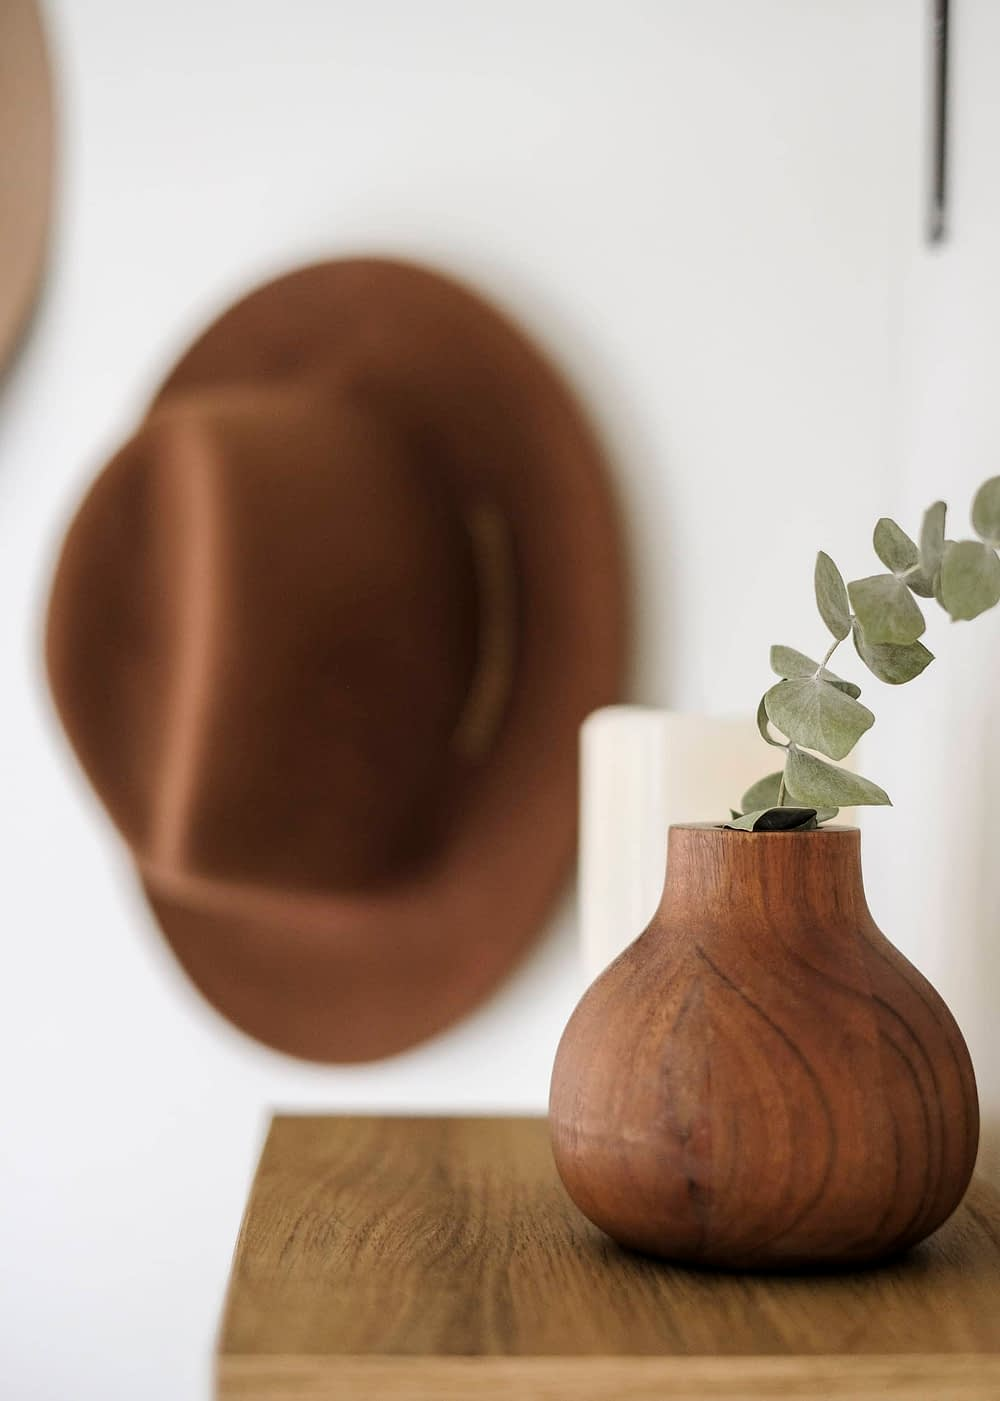 Small wood vase with eucalyptus in it